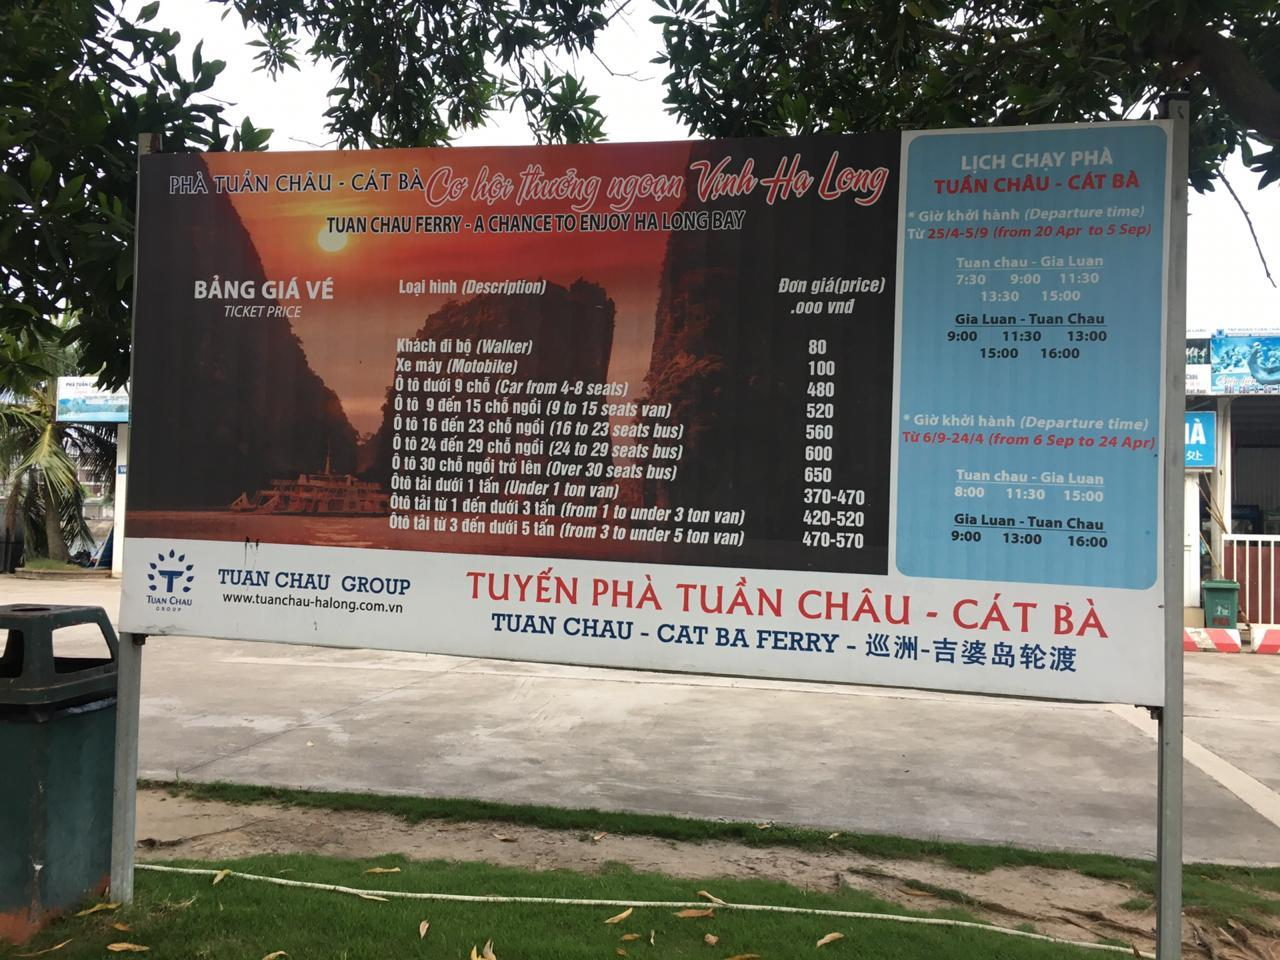 cat ba ferry timing, halong bay from cat ba island schedule